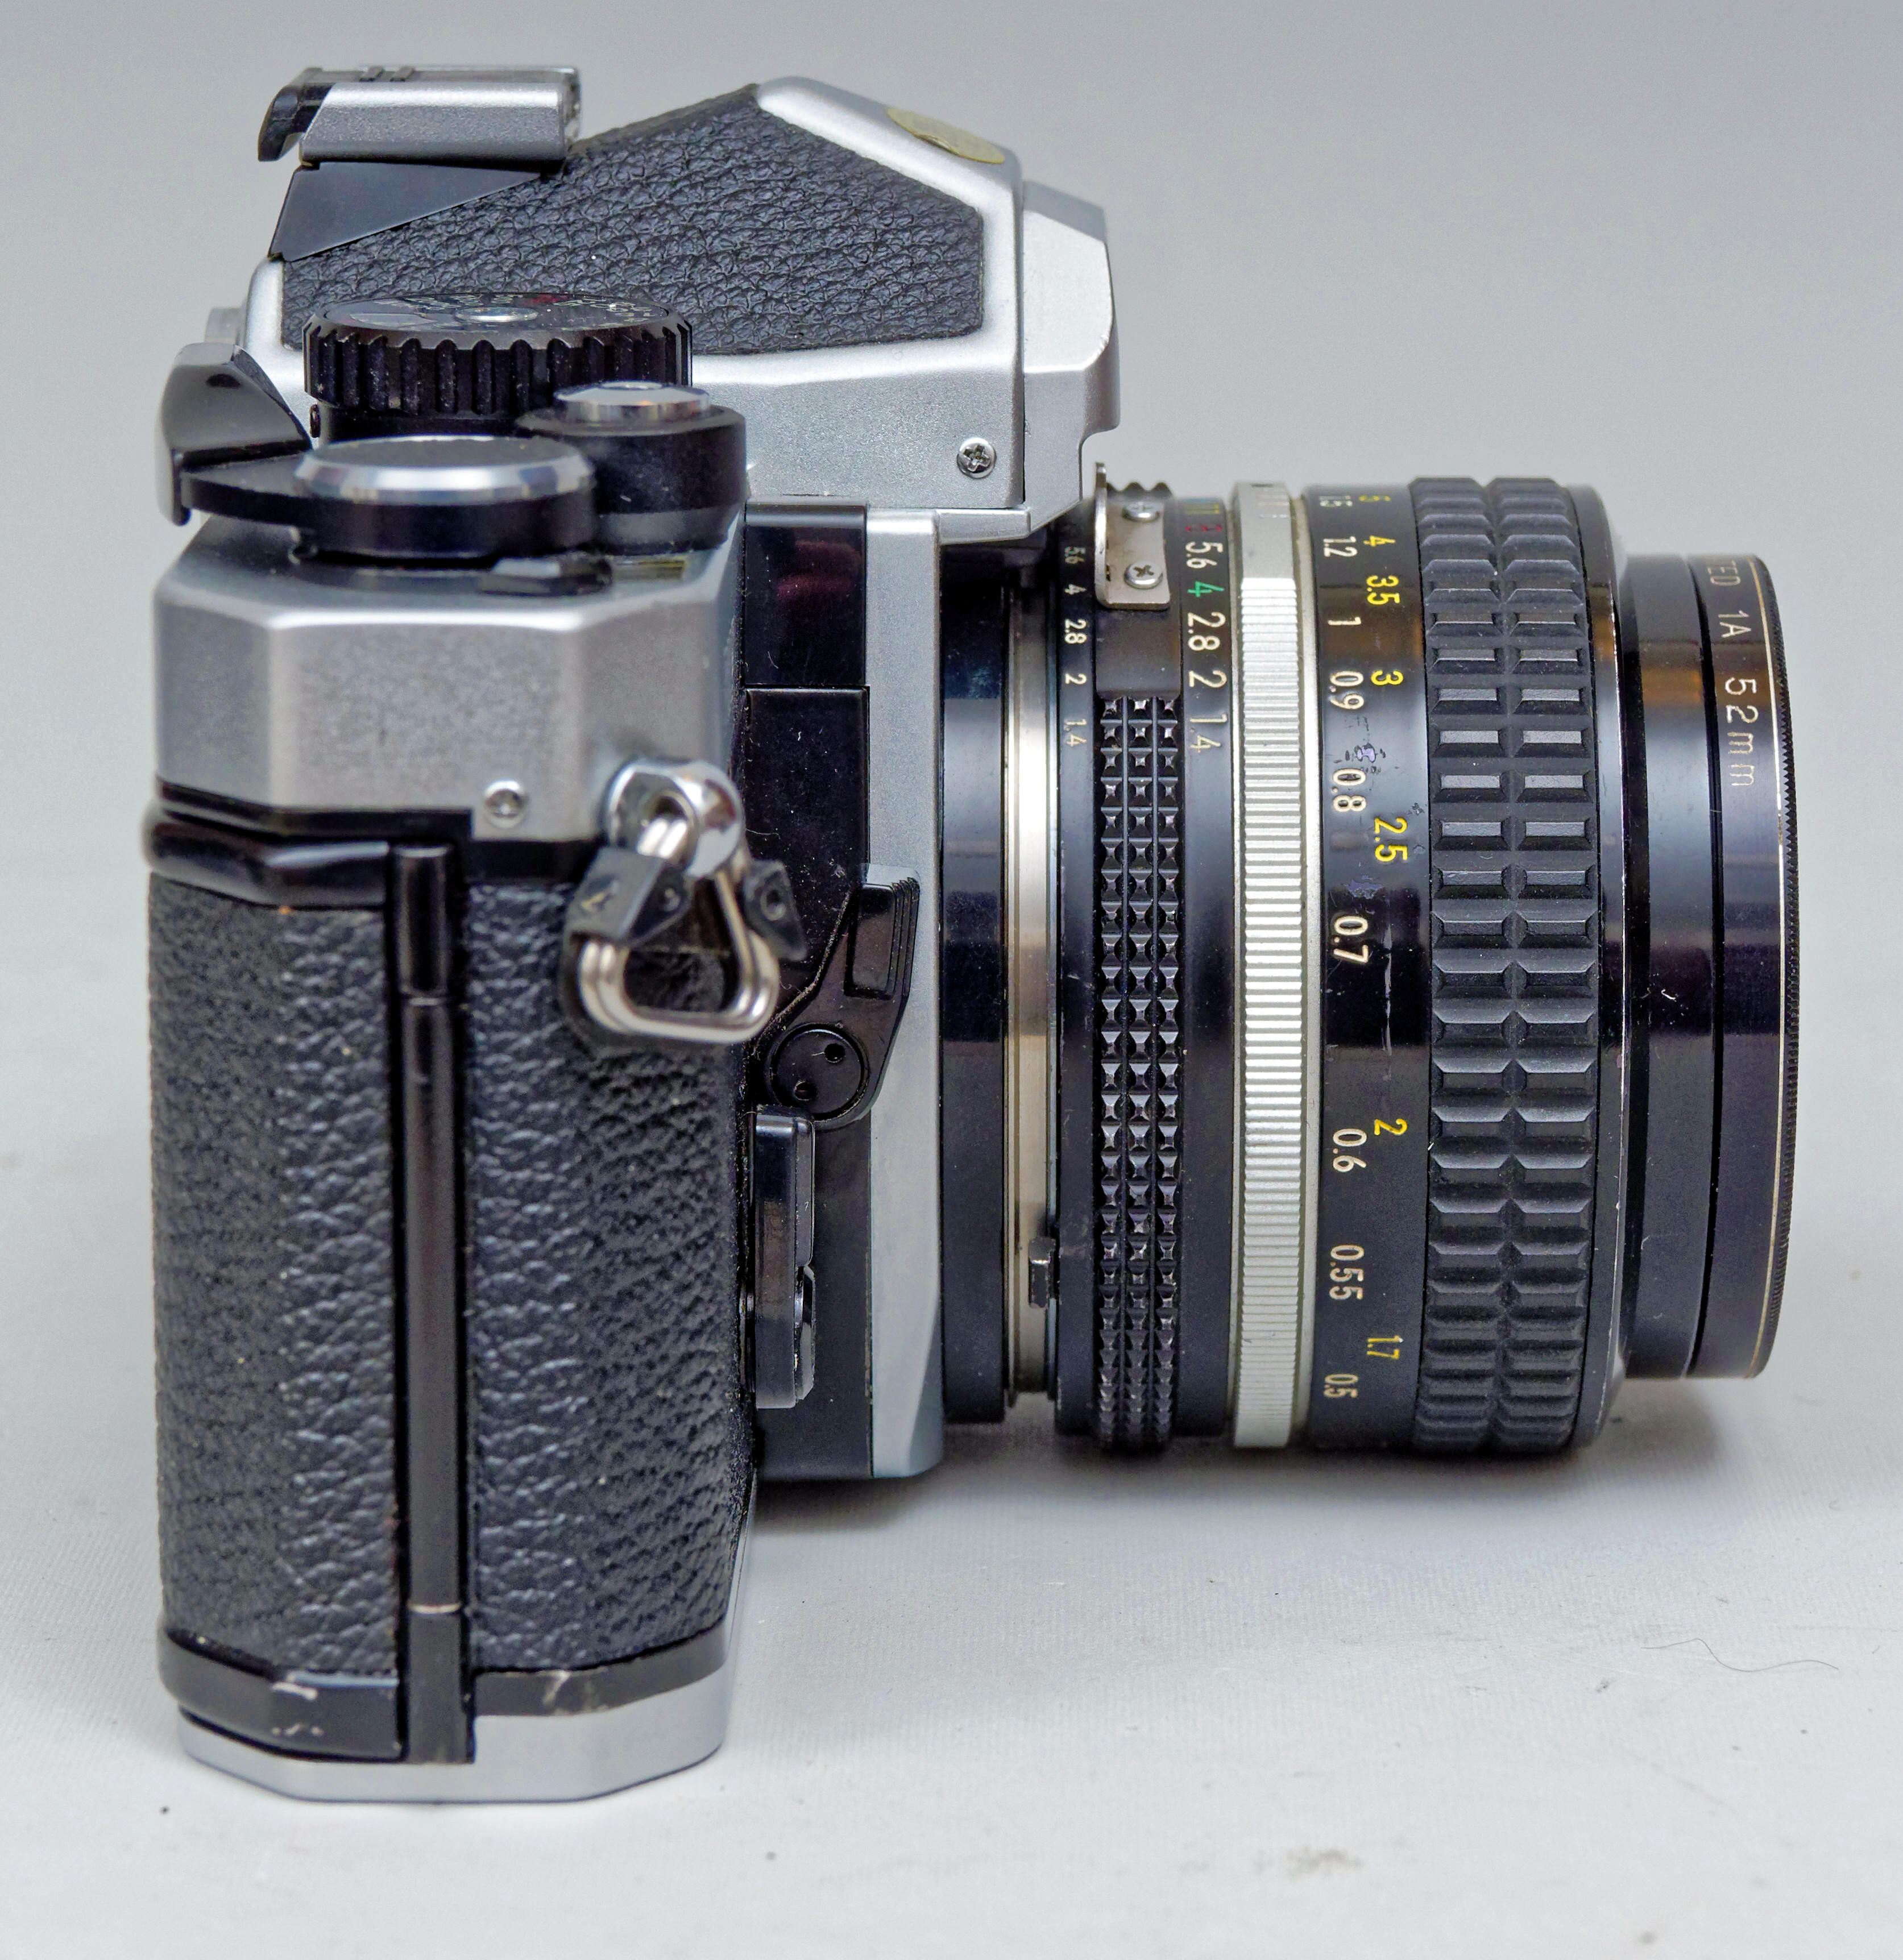 This should be Nikon-FM2-6.jpeg.  Is it missing?